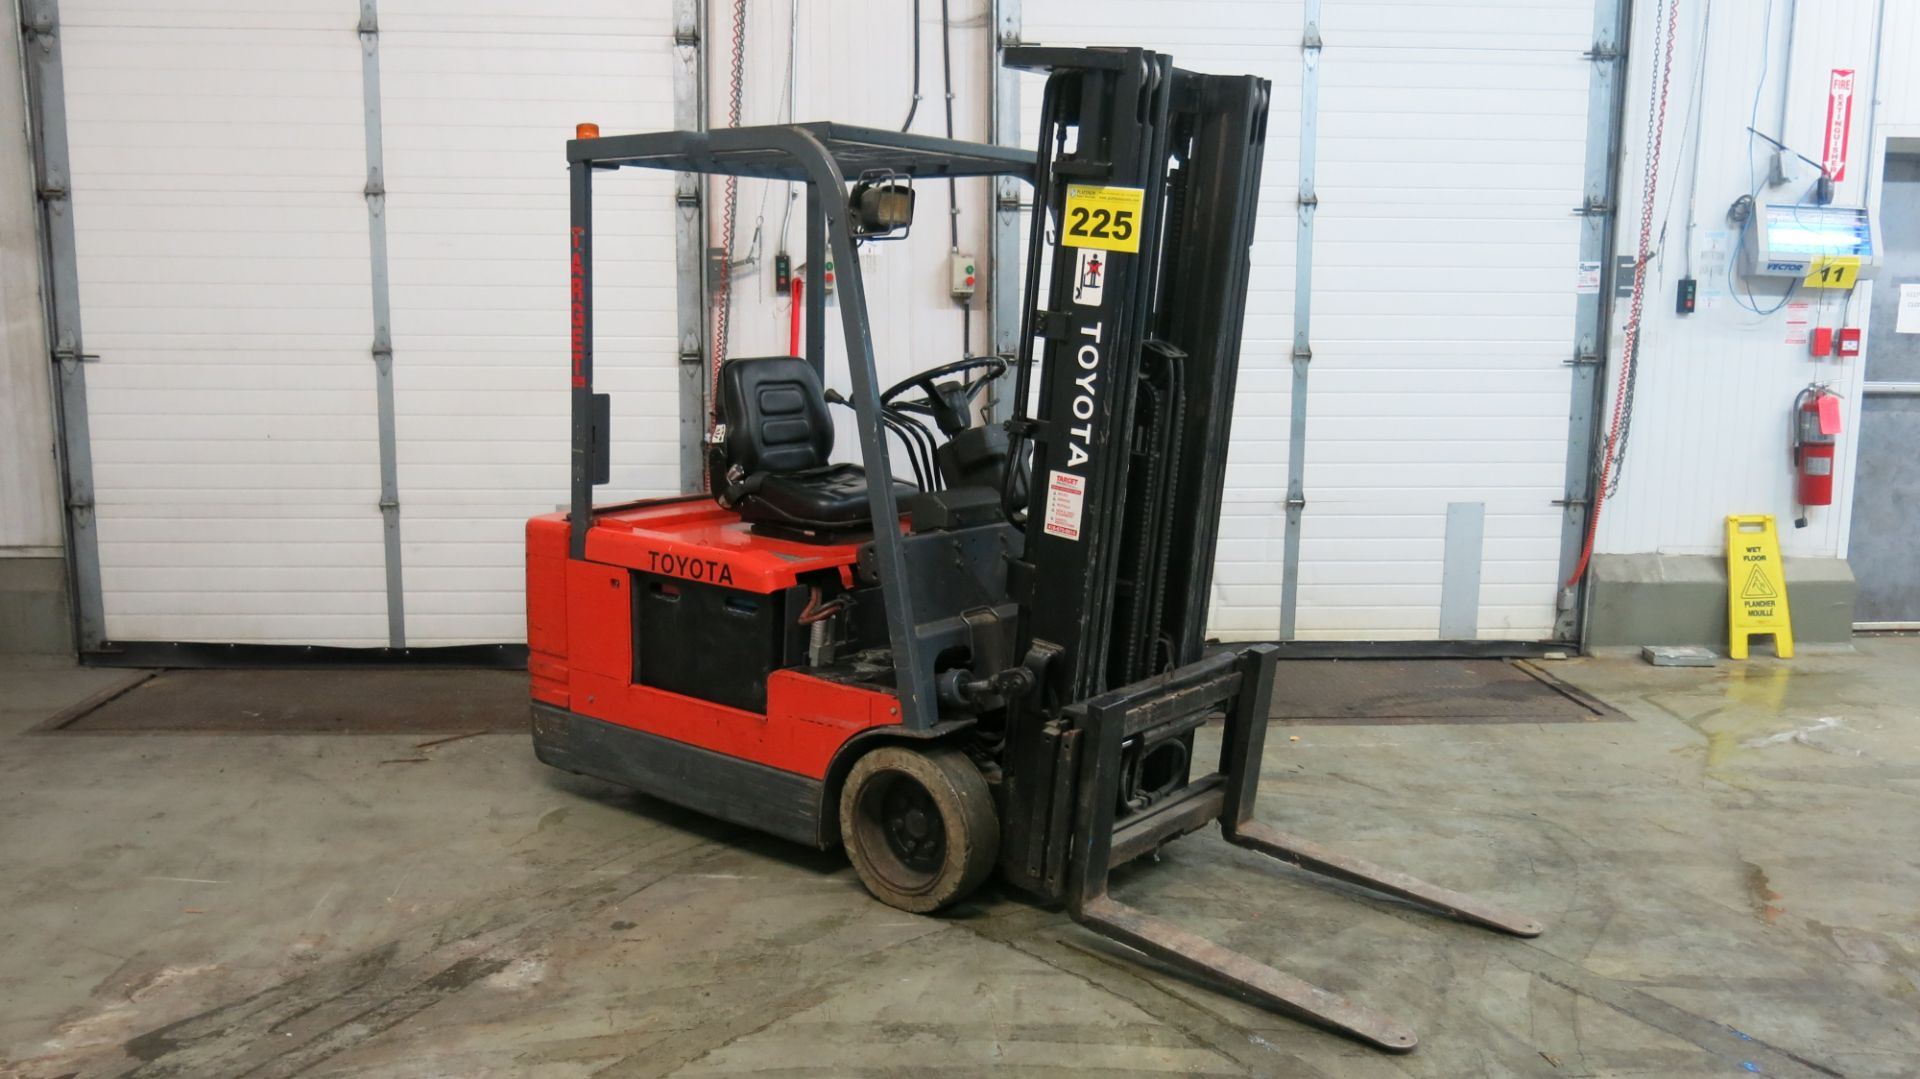 """Lot 225 - TOYOTA, 5FBE20, 3,450 LBS., 3-WHEEL, ELECTRIC FORKLIFT WITH SIDESHIFT, 189"""" MAXIMUM LIFT,"""